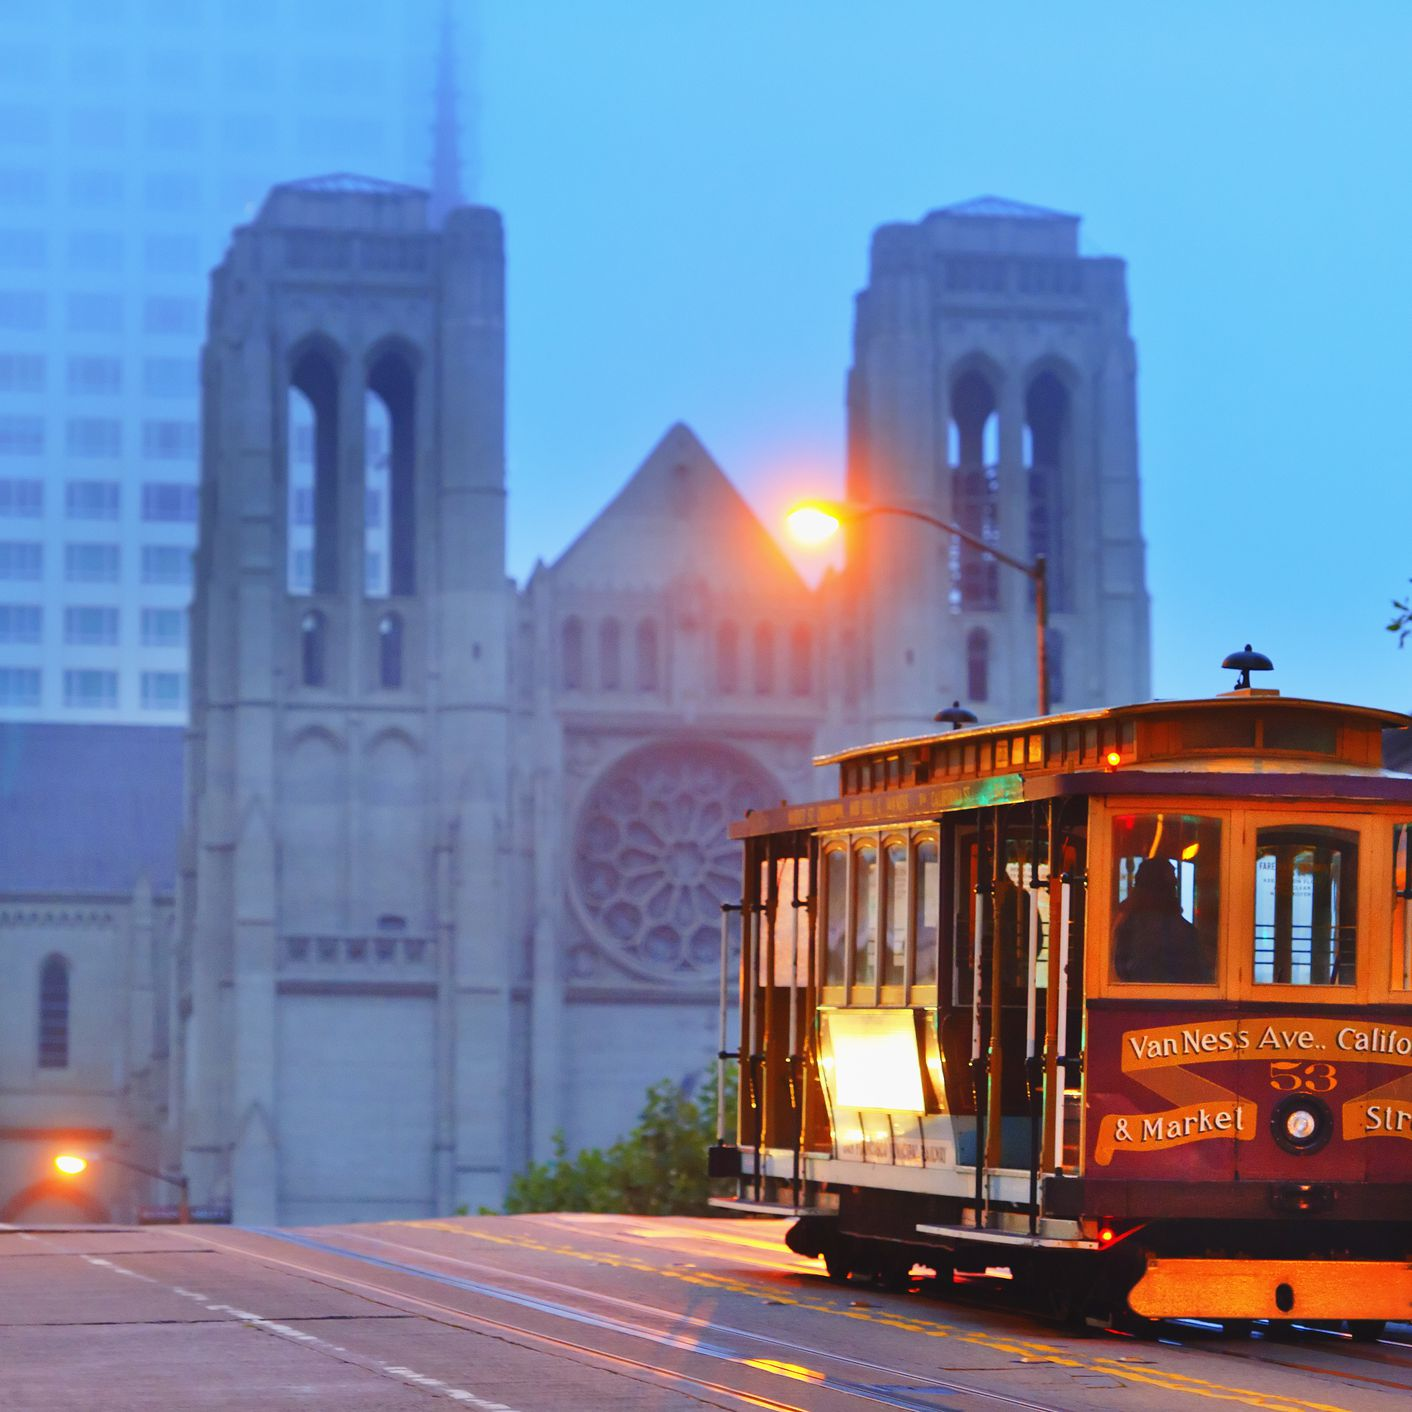 The Top 8 Things to Do in San Francisco's Nob Hill